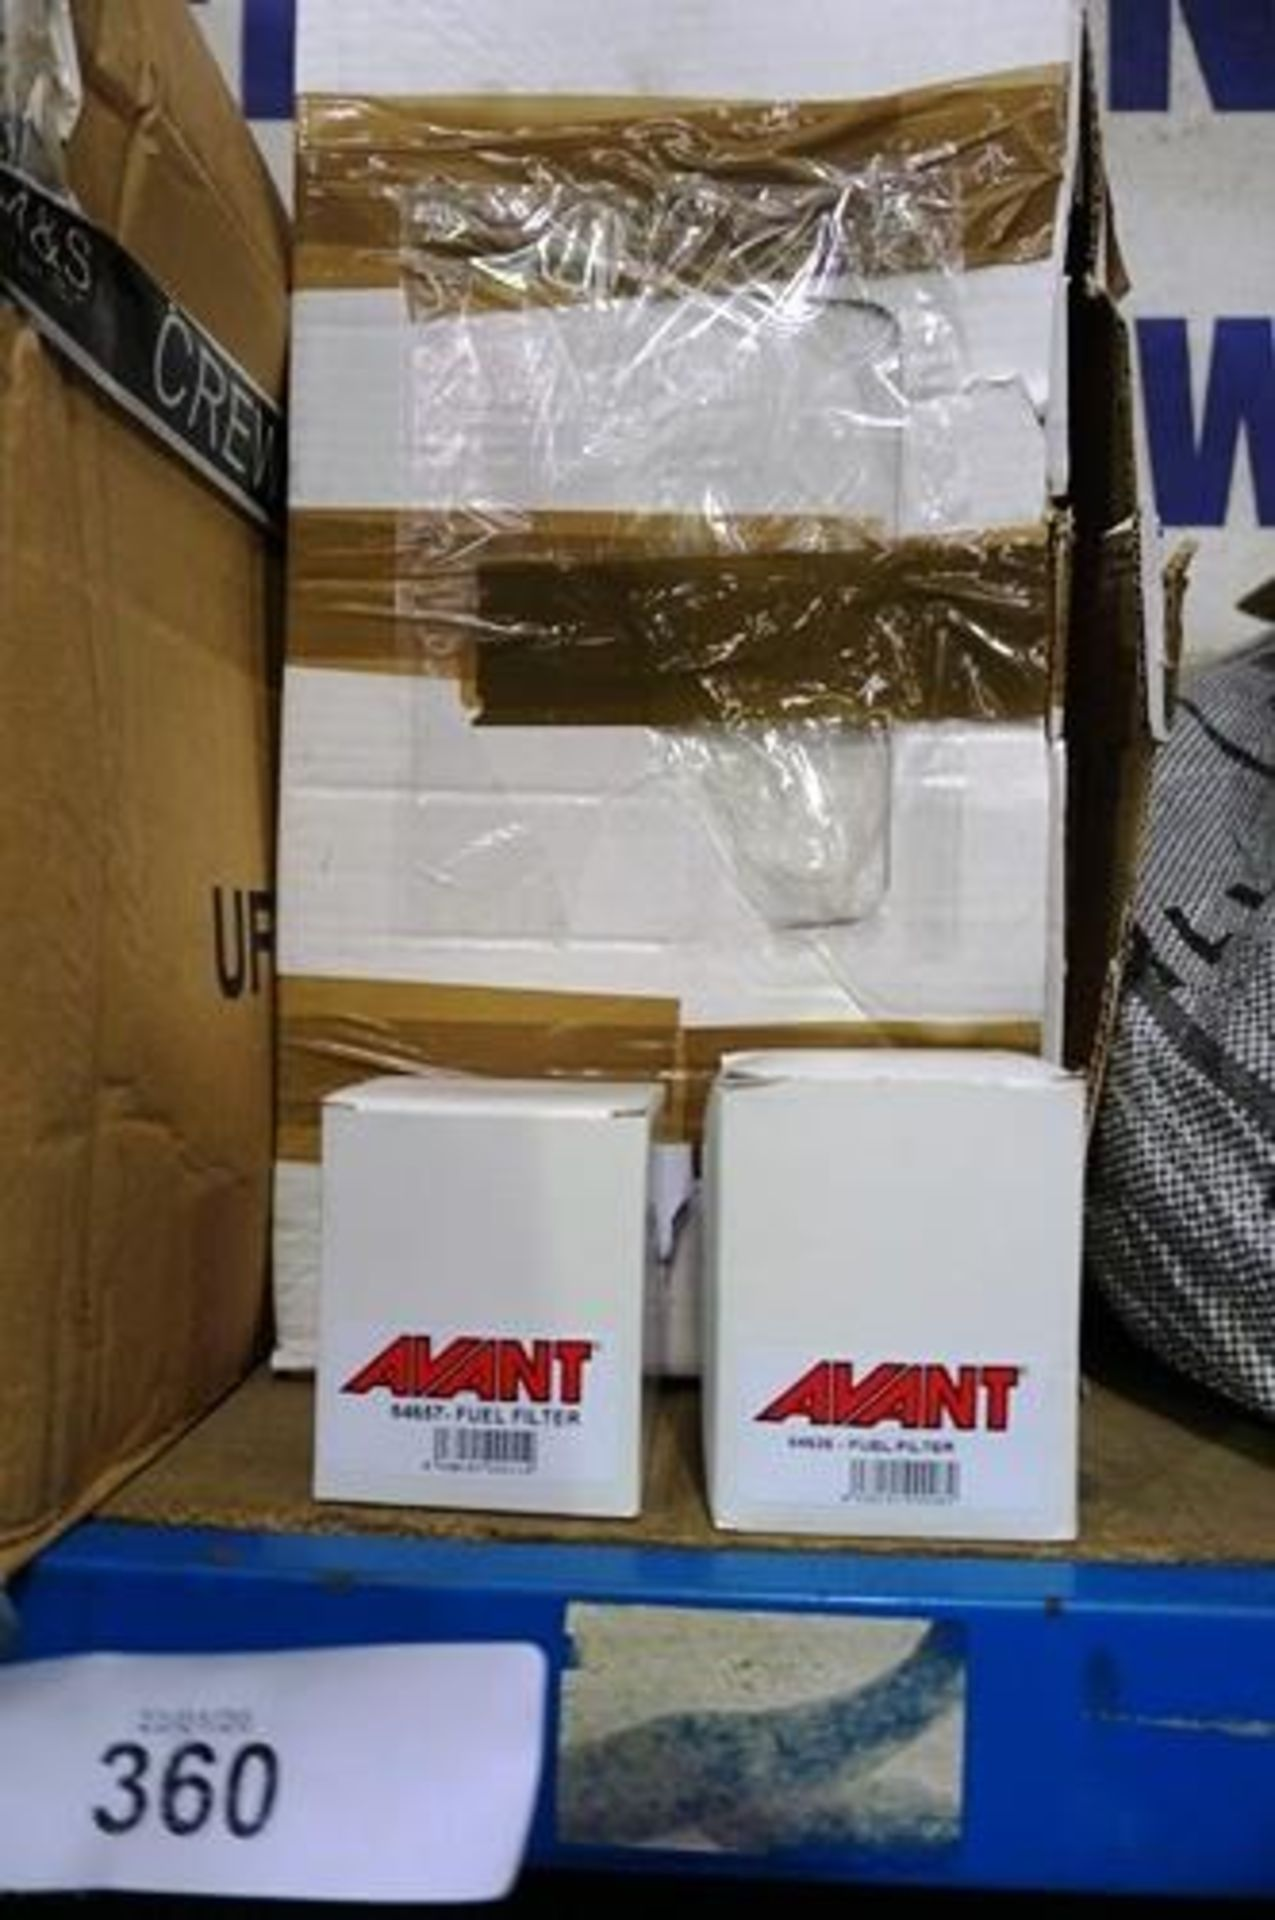 Lot 360 - A box of Avant filters, various models including air, oil and fuel etc. - New in box (GS11)